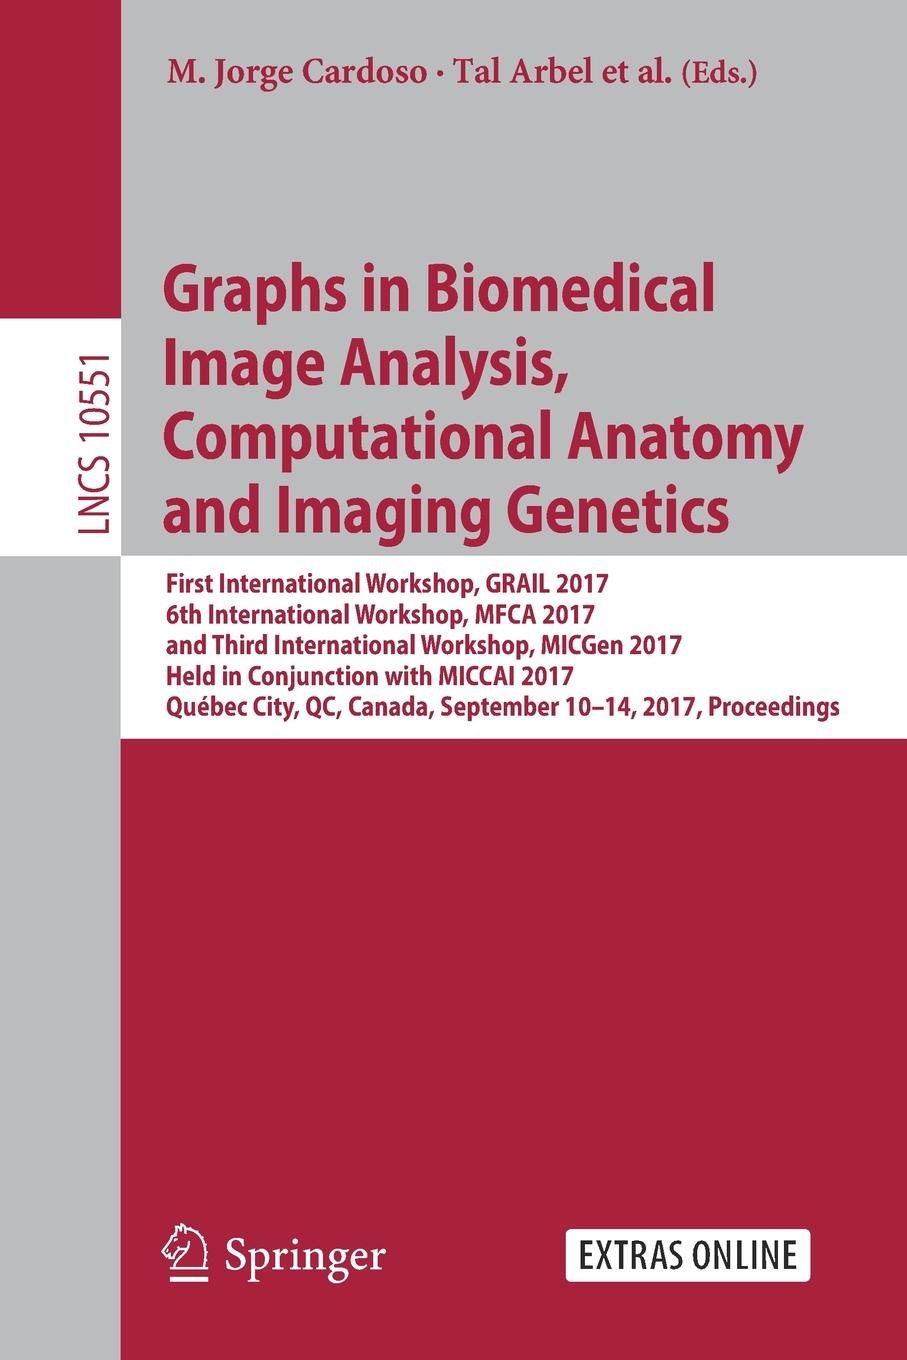 Graphs in Biomedical Image Analysis, Computational Anatomy and Imaging Genetics. First International Workshop, GRAIL 2017, 6th International Workshop, MFCA 2017, and Third International Workshop, MICGen 2017, Held in Conjunction with MICCAI 2017, ... devil s workshop